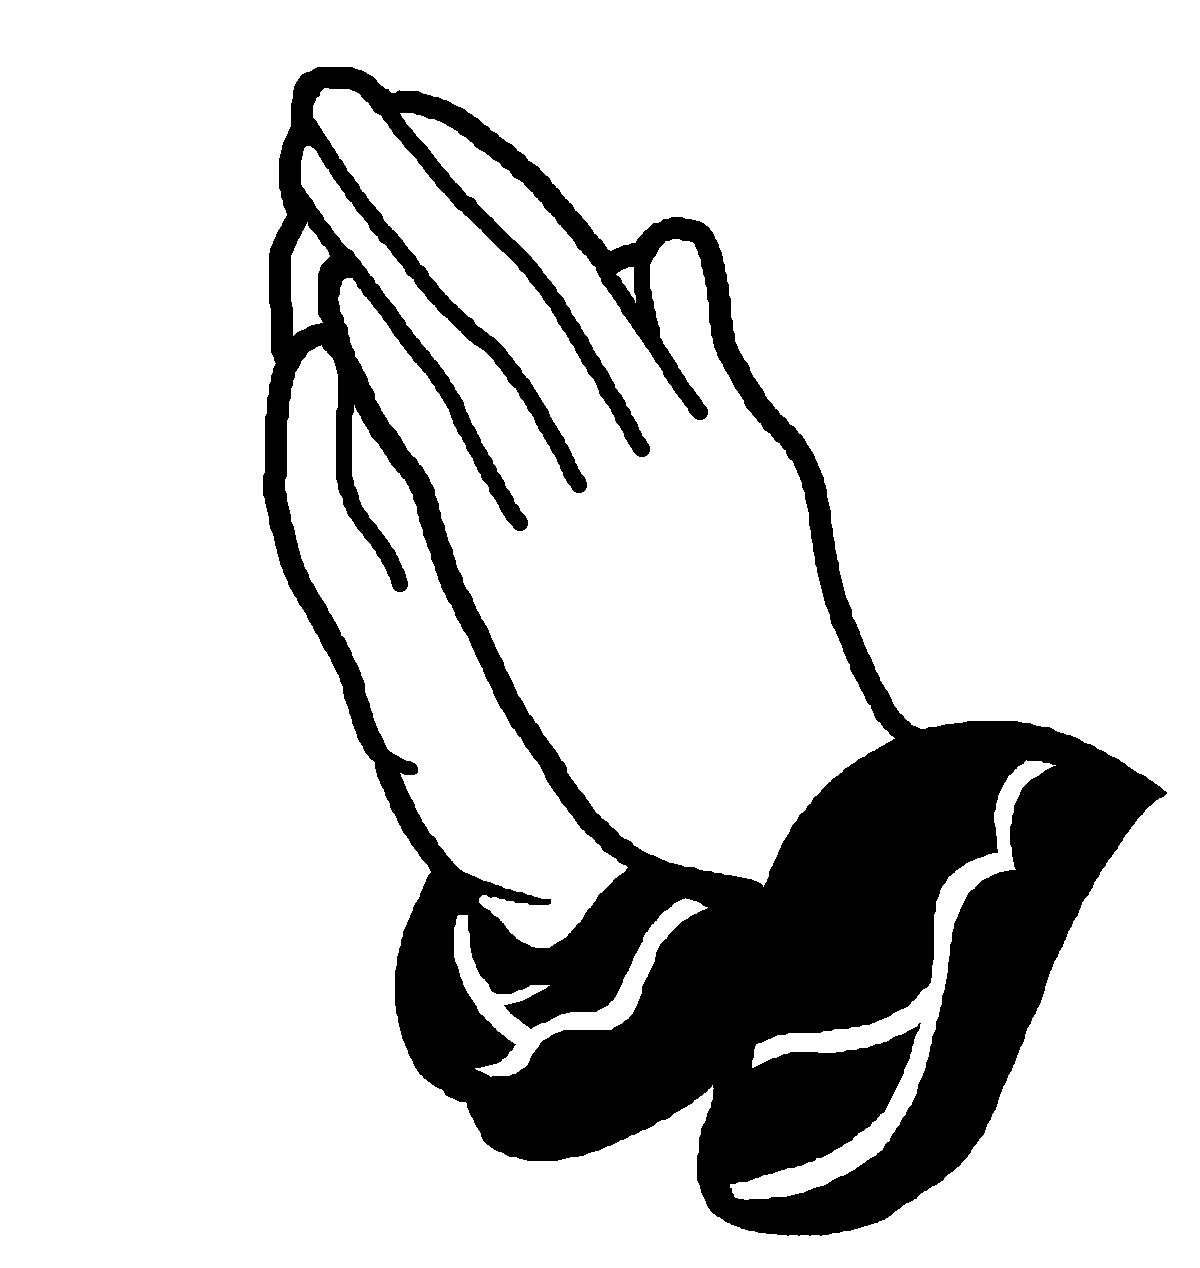 Open Praying Hands Clipart-open praying hands clipart-3